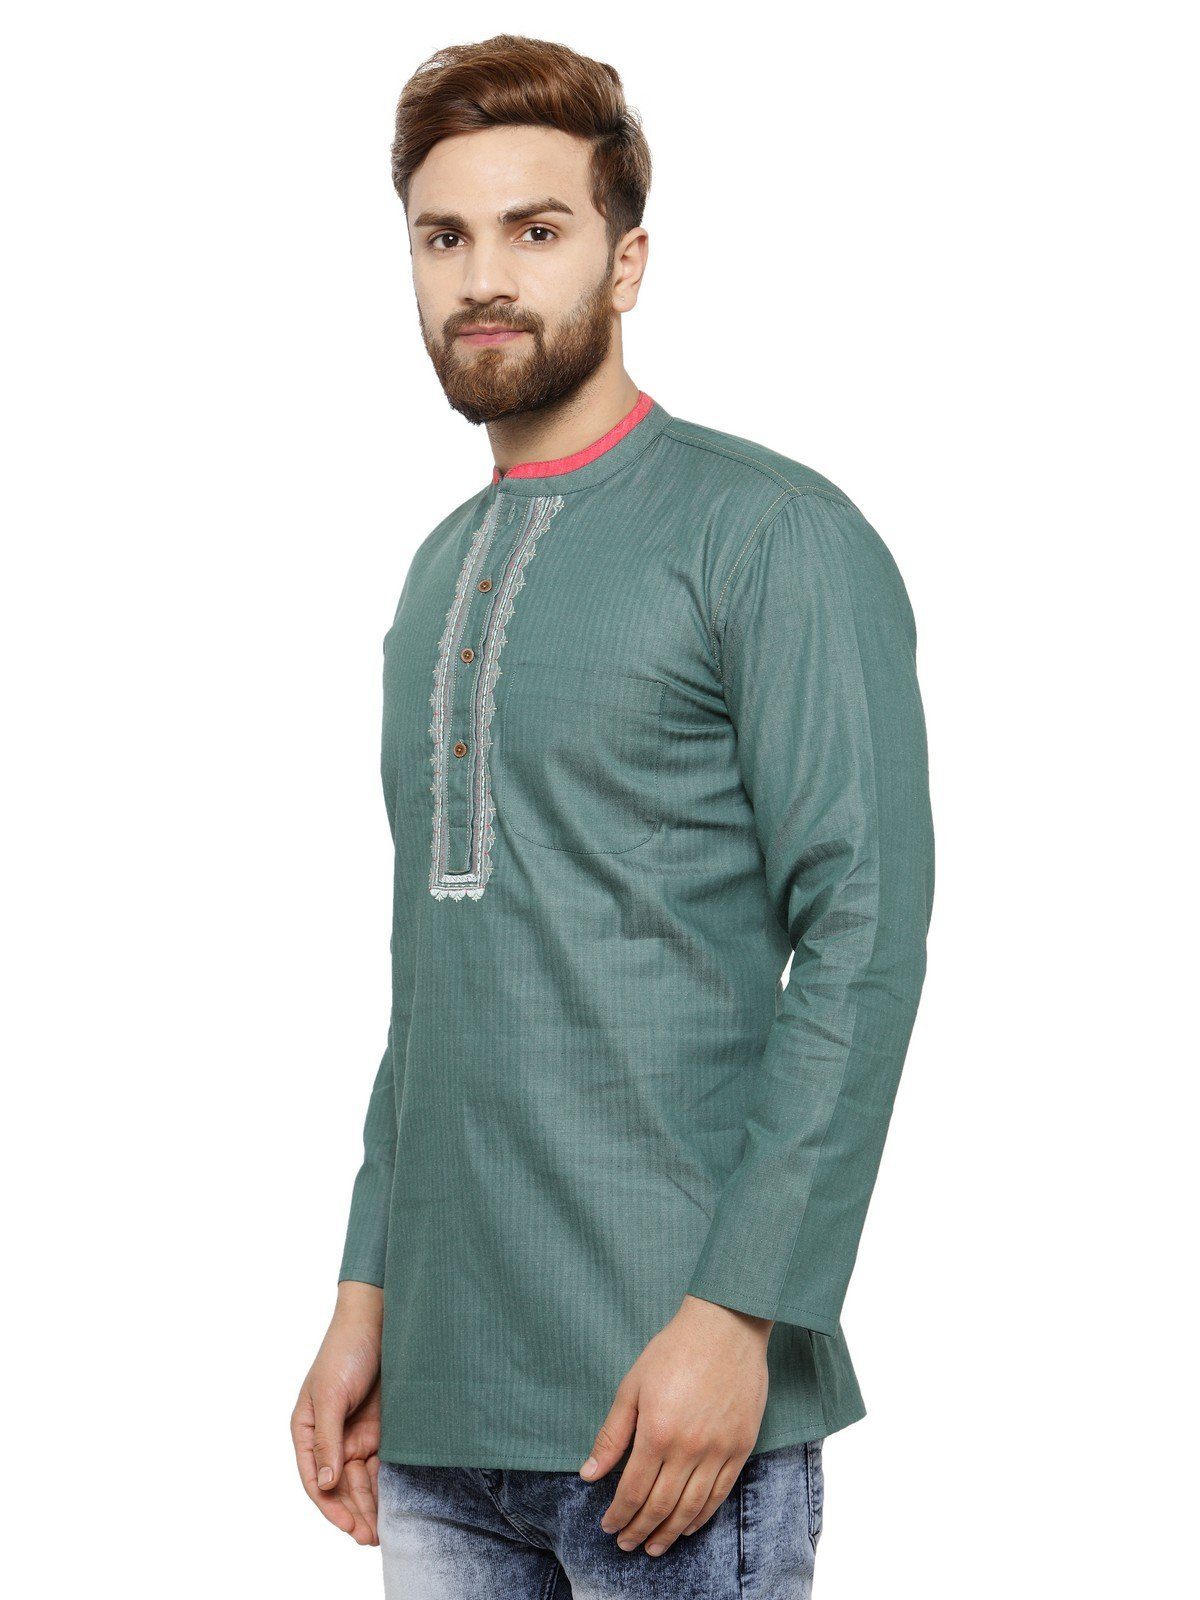 Apparel Men's Cotton Designer Short Kurta 42 Green by ARCH ELEMENTS (Image #2)